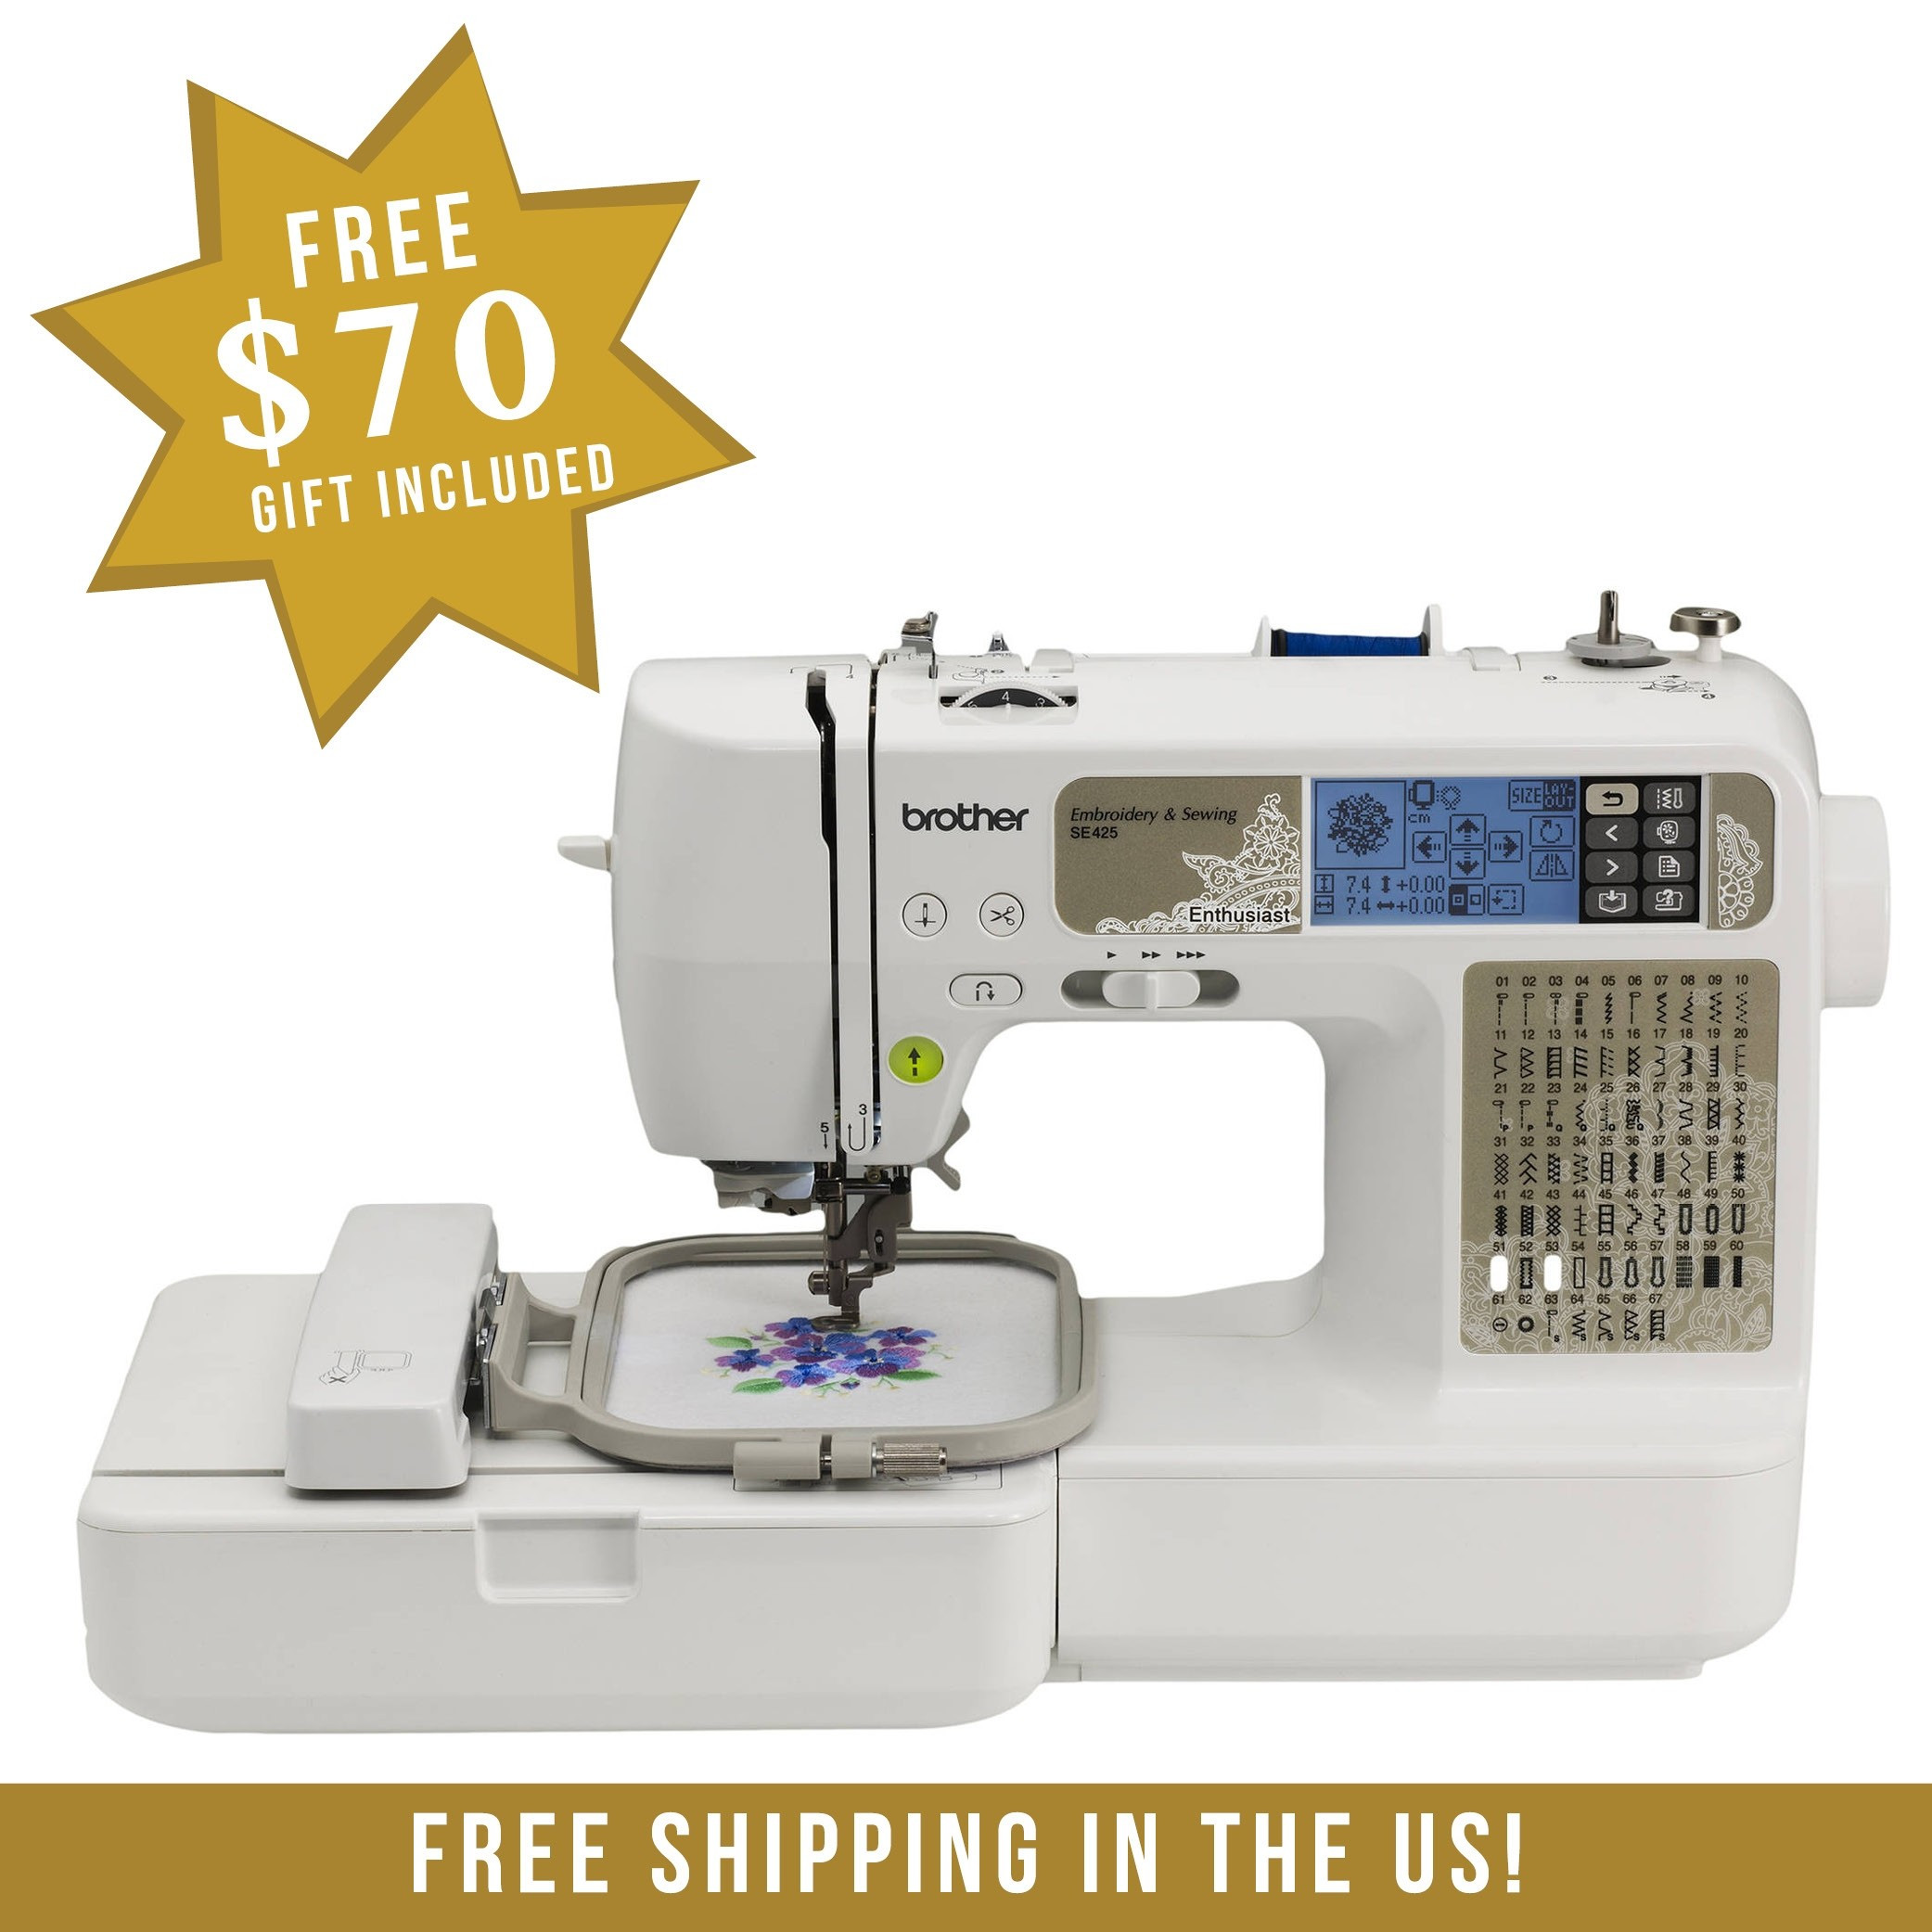 Brother SE425 puterized Sewing and Embroidery Machine